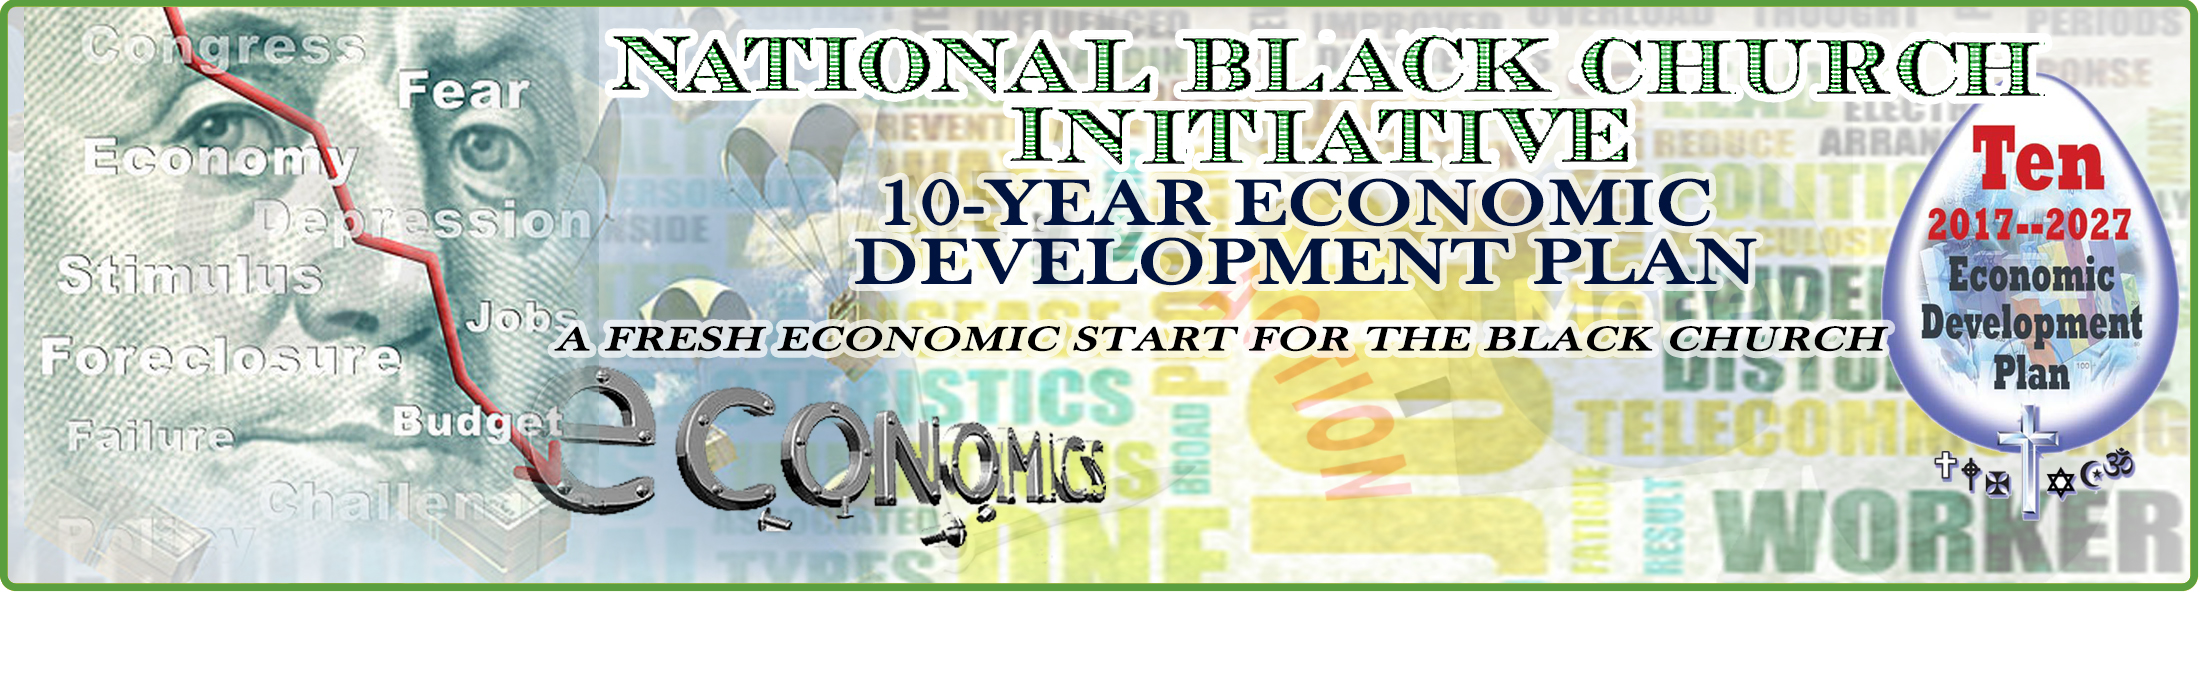 National Black Church 10-Year Economic Development Plan Booklet